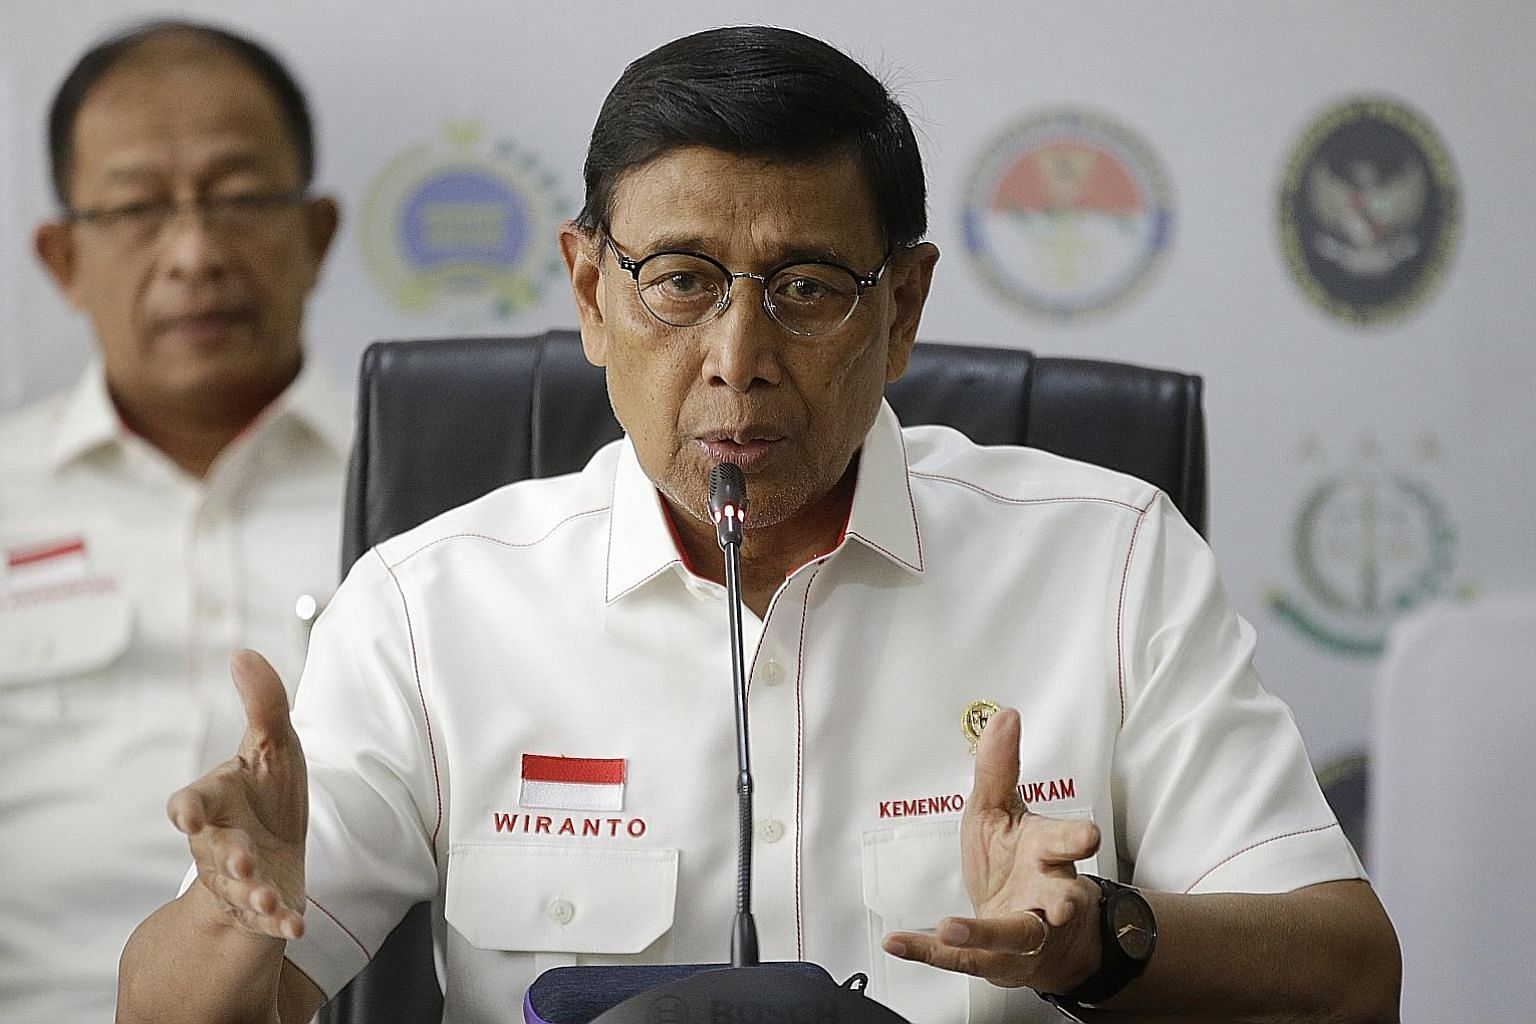 Coordinating Minister of Political, Legal and Security Affairs Wiranto met top officials yesterday to discuss the security situation. PHOTO: ASSOCIATED PRESS